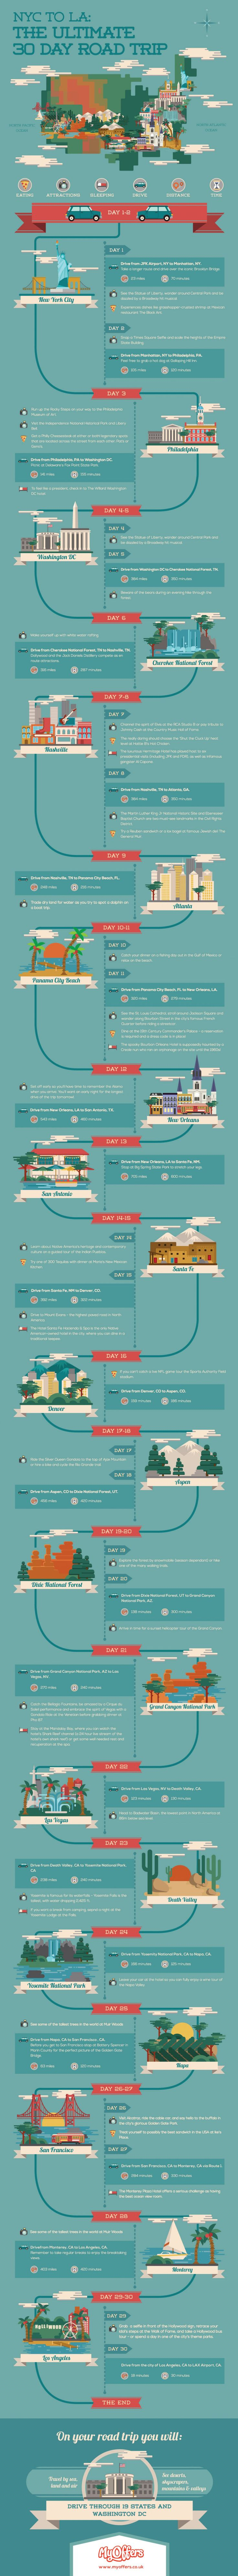 Nyc To La The Ultimate Road Trip Infographic More